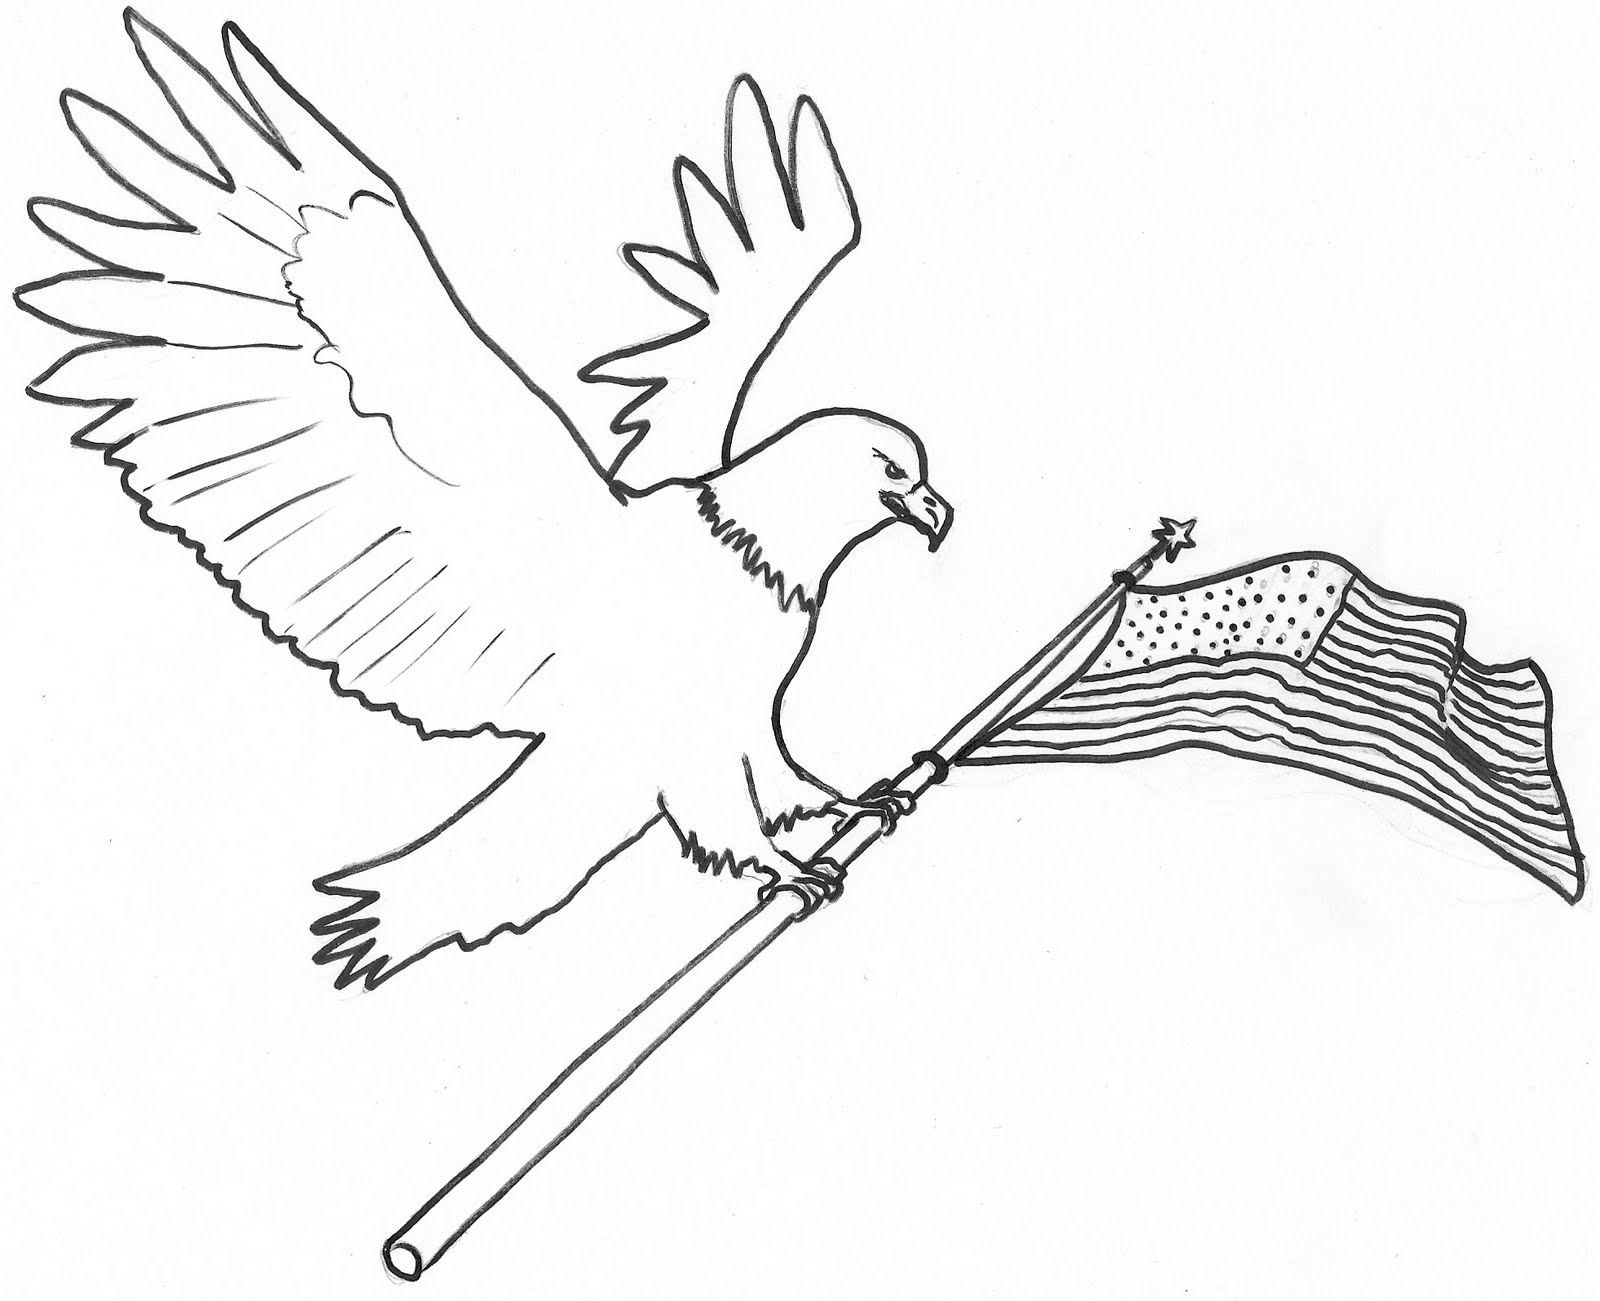 Bald Eagle Line Drawing at GetDrawings.com | Free for personal use ...